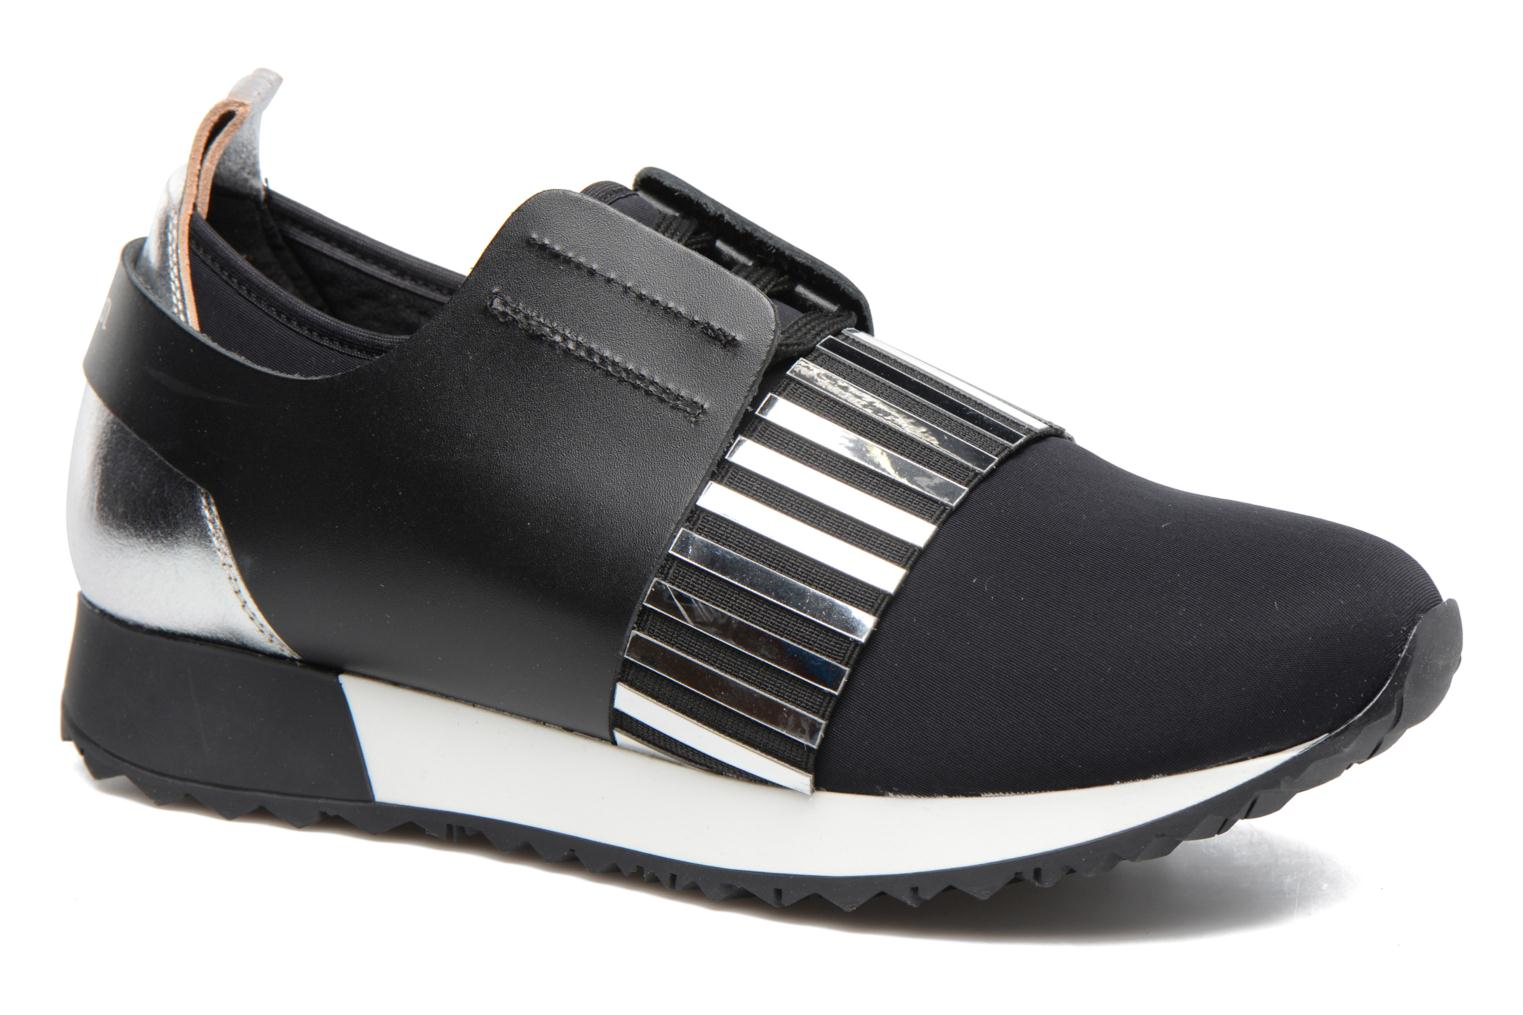 Marques Chaussure homme Melvin & Hamilton homme Kane 2 Crust